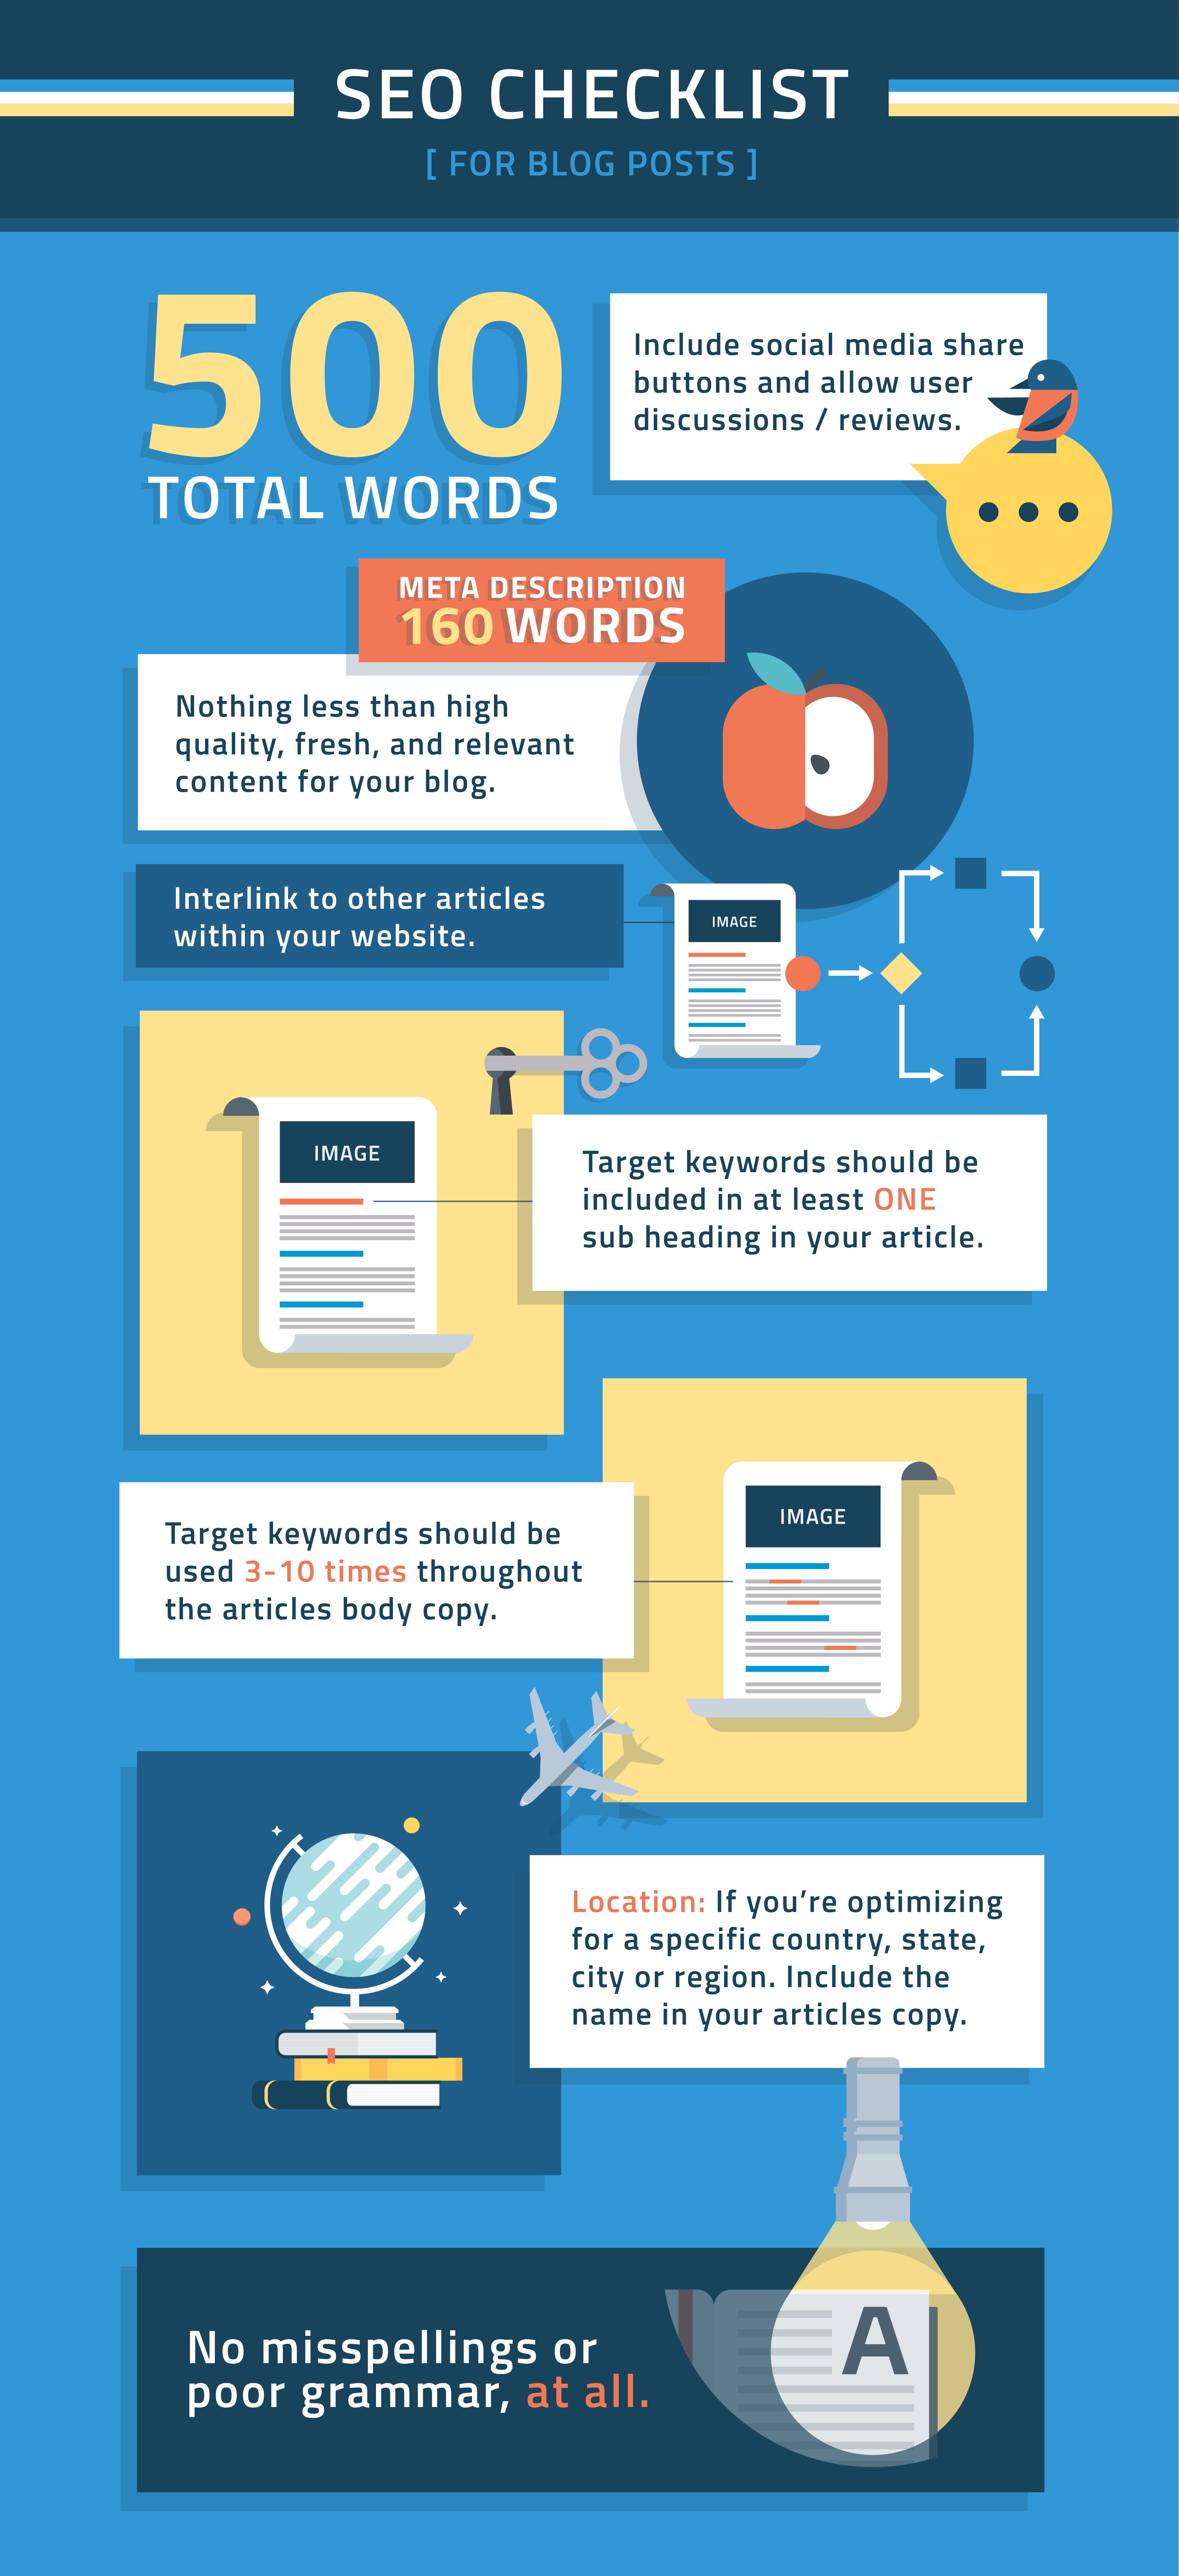 Benefits of Blogging for Business | Increase SEO Through